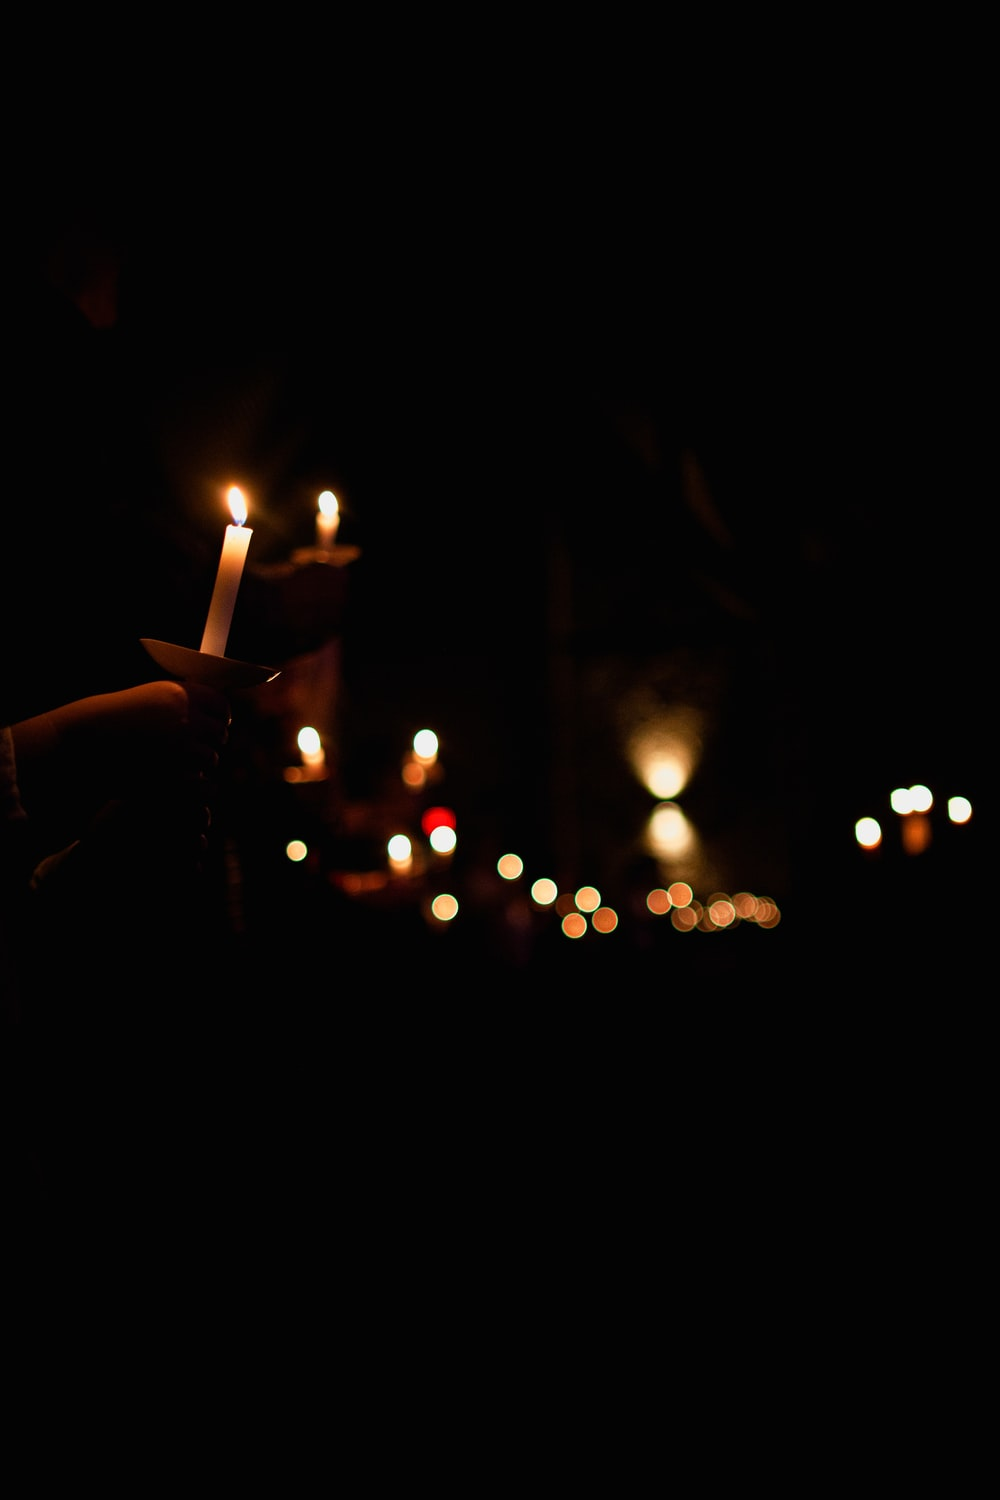 person holding lighted candle during night time